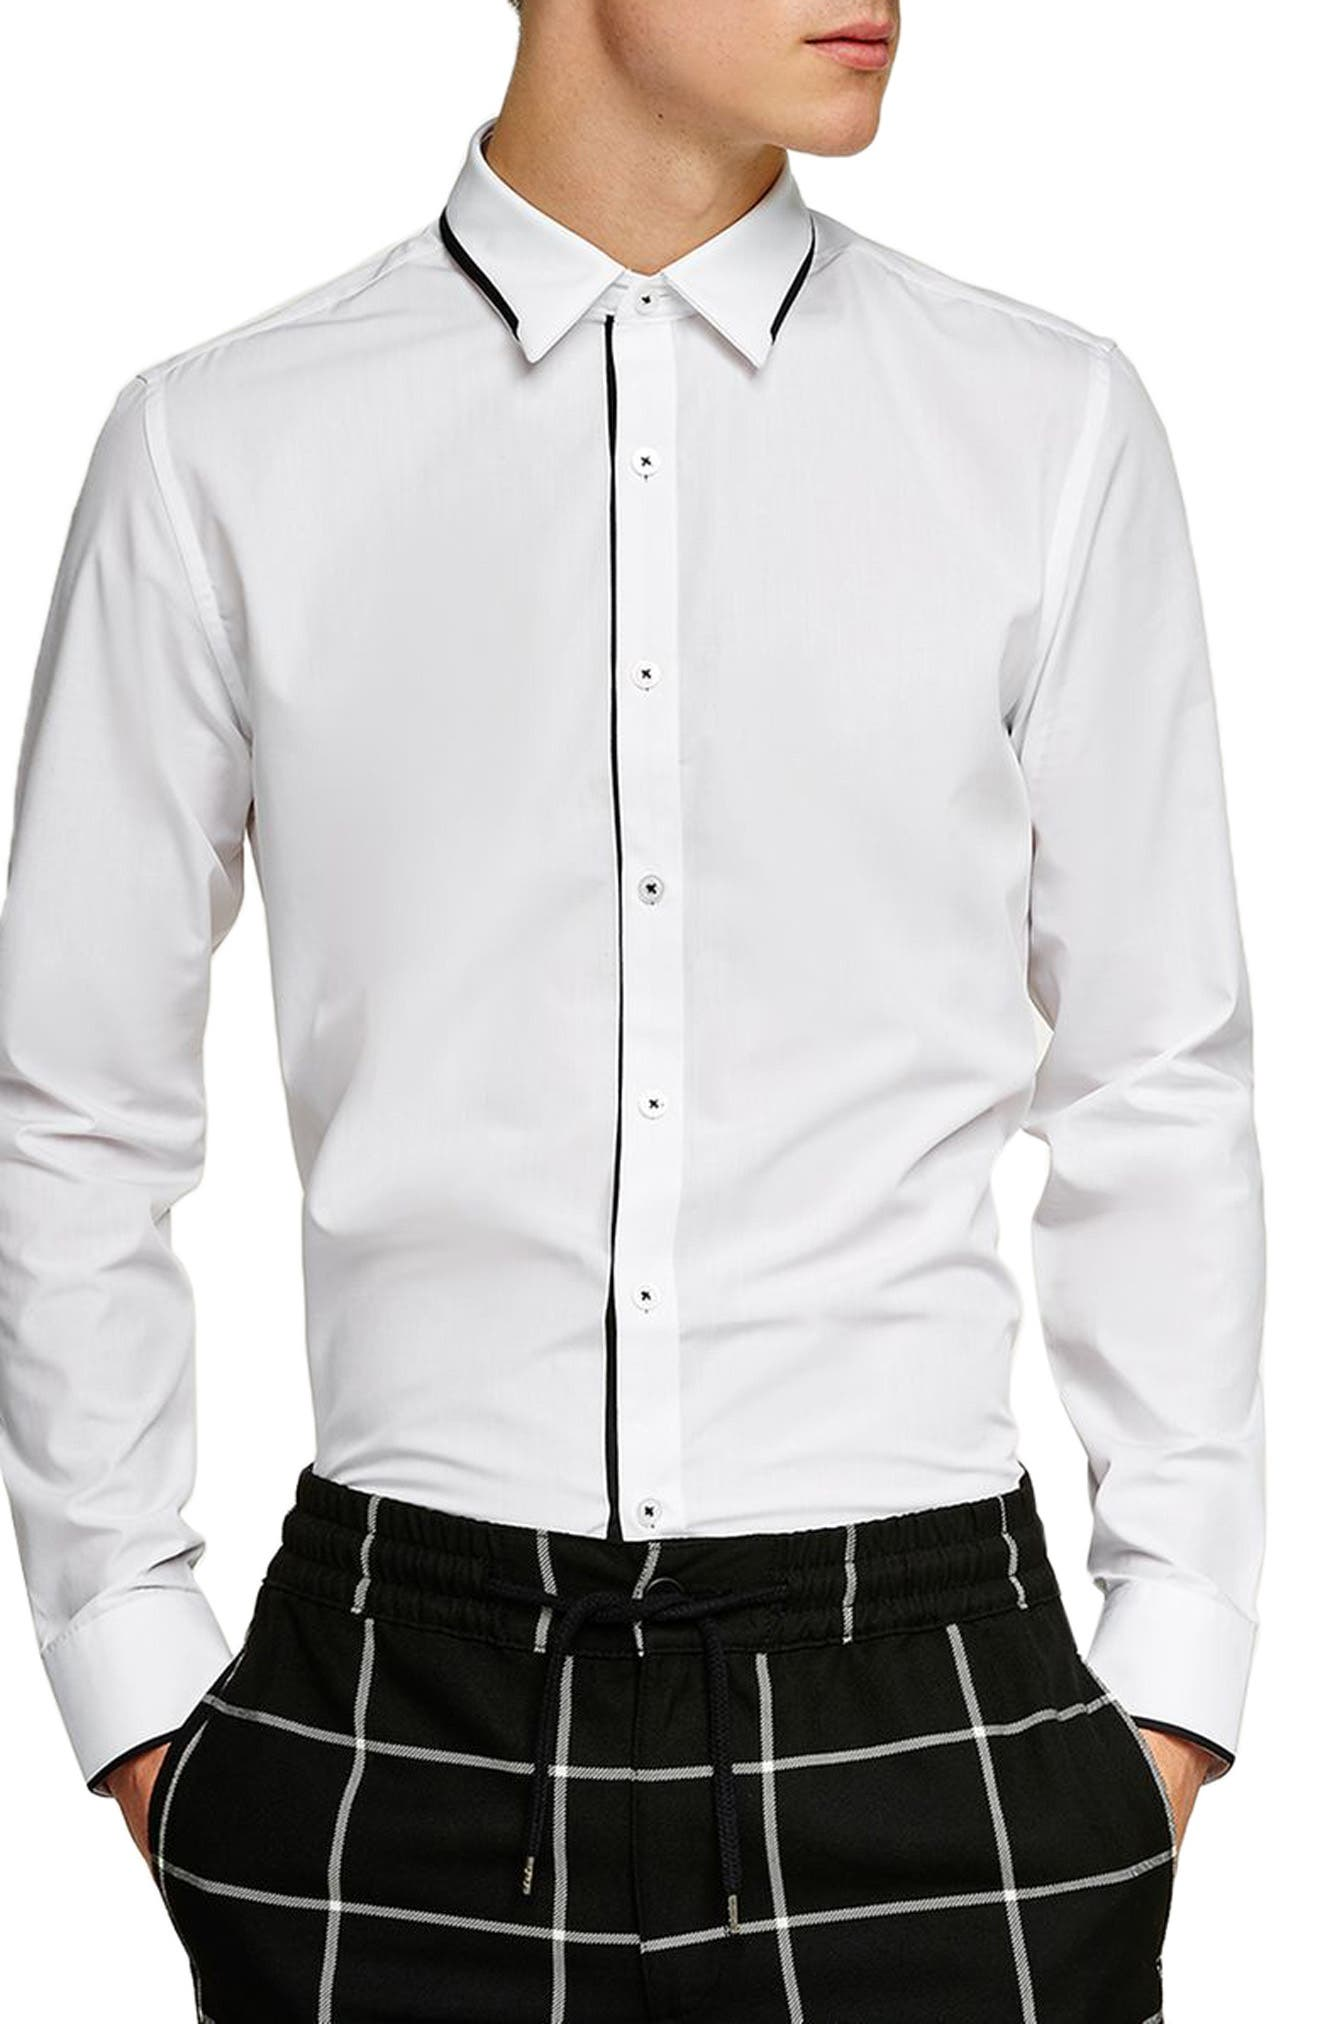 Topman Smart Skinny Fit Dress Shirt